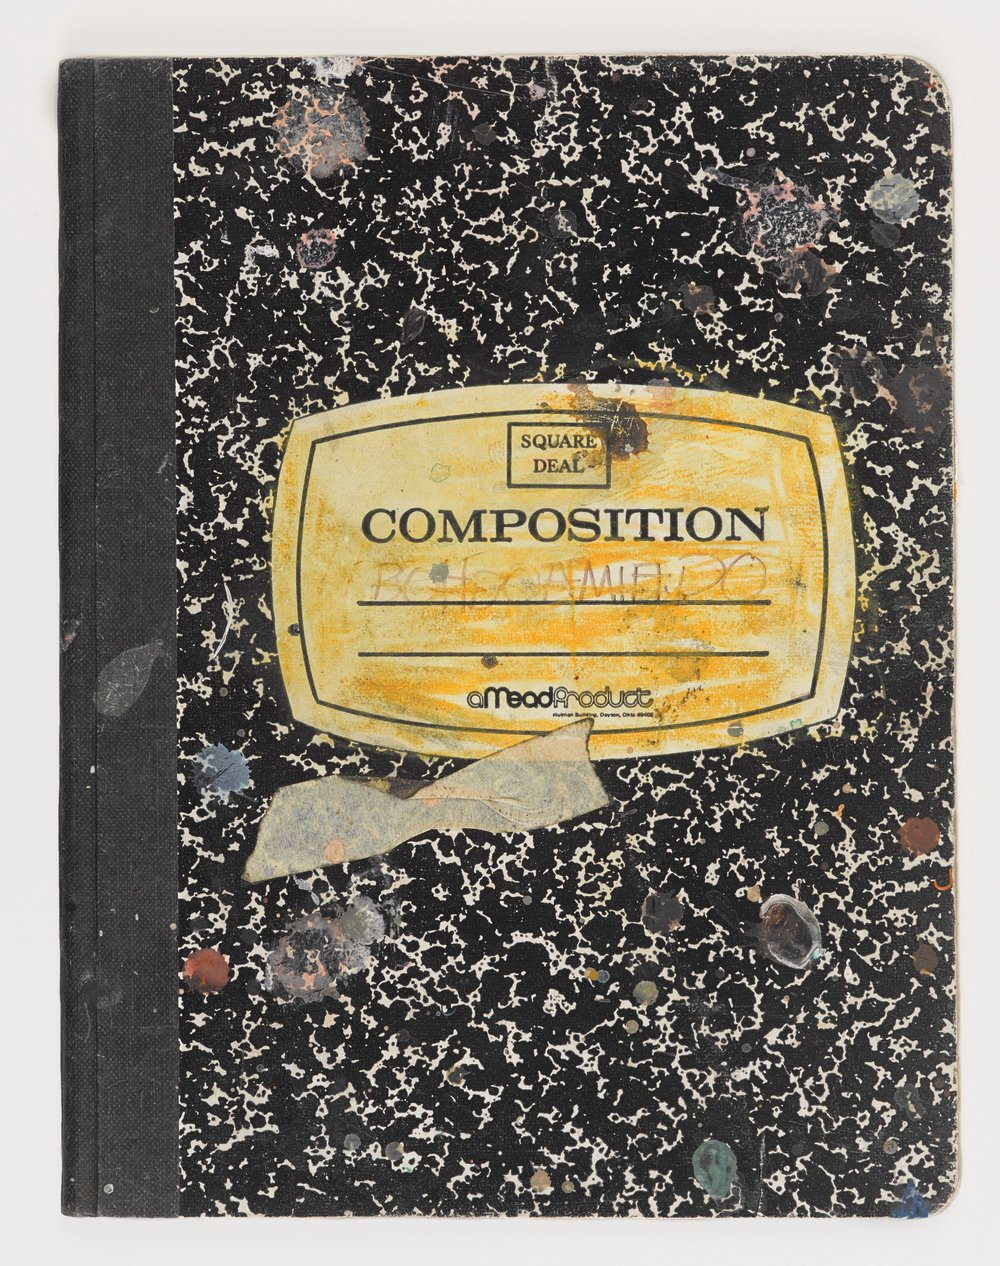 Another Basquiat notebook-- he was most fond of the kinds of everyday composition notebooks used in school. This is a reminder not to overthink the note-taking process. Just start and use your handwritten expression and preferences to guide you.